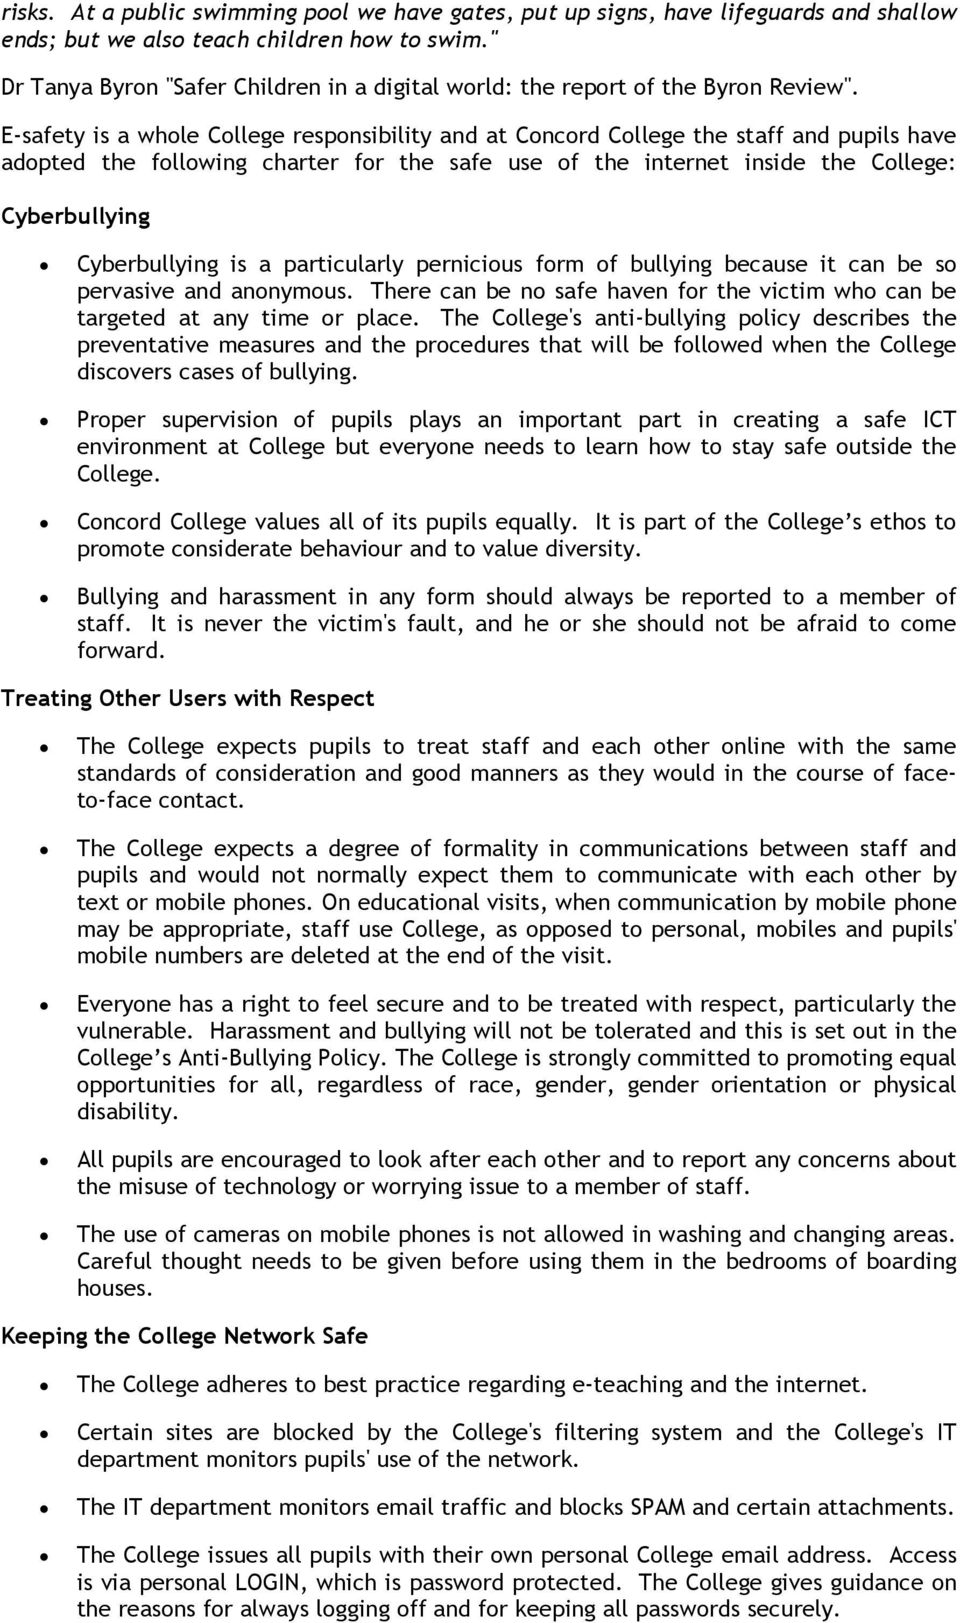 E-safety is a whole College responsibility and at Concord College the staff and pupils have adopted the following charter for the safe use of the internet inside the College: Cyberbullying